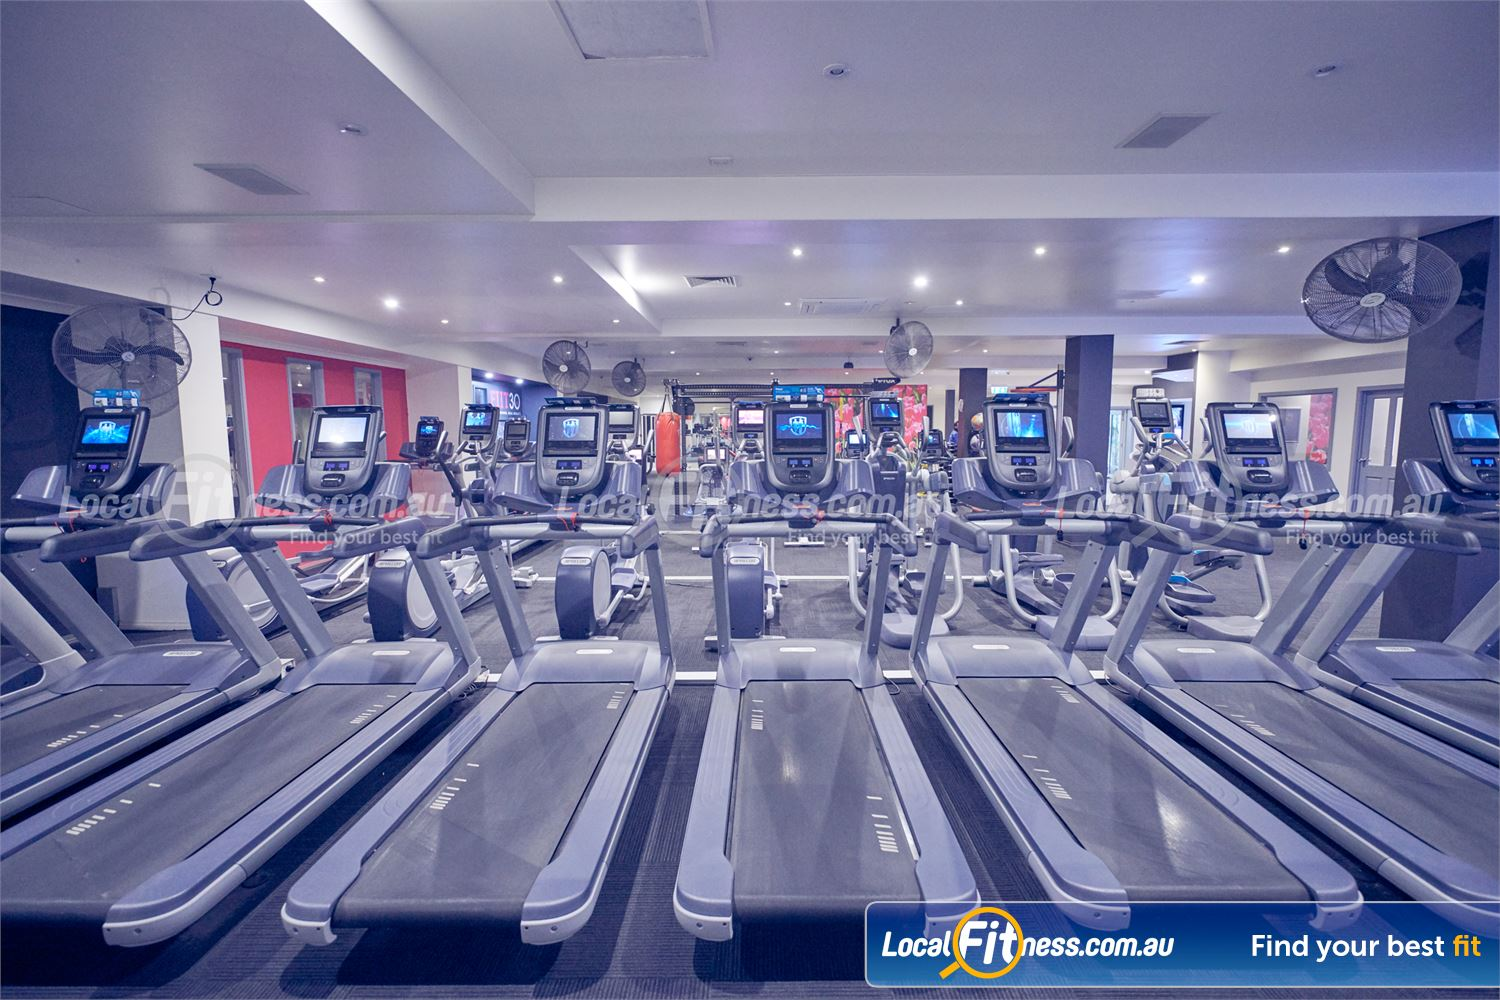 Fernwood Fitness Bulleen Our 24 hour Bulleen gym provides state of the art cardio equipment.